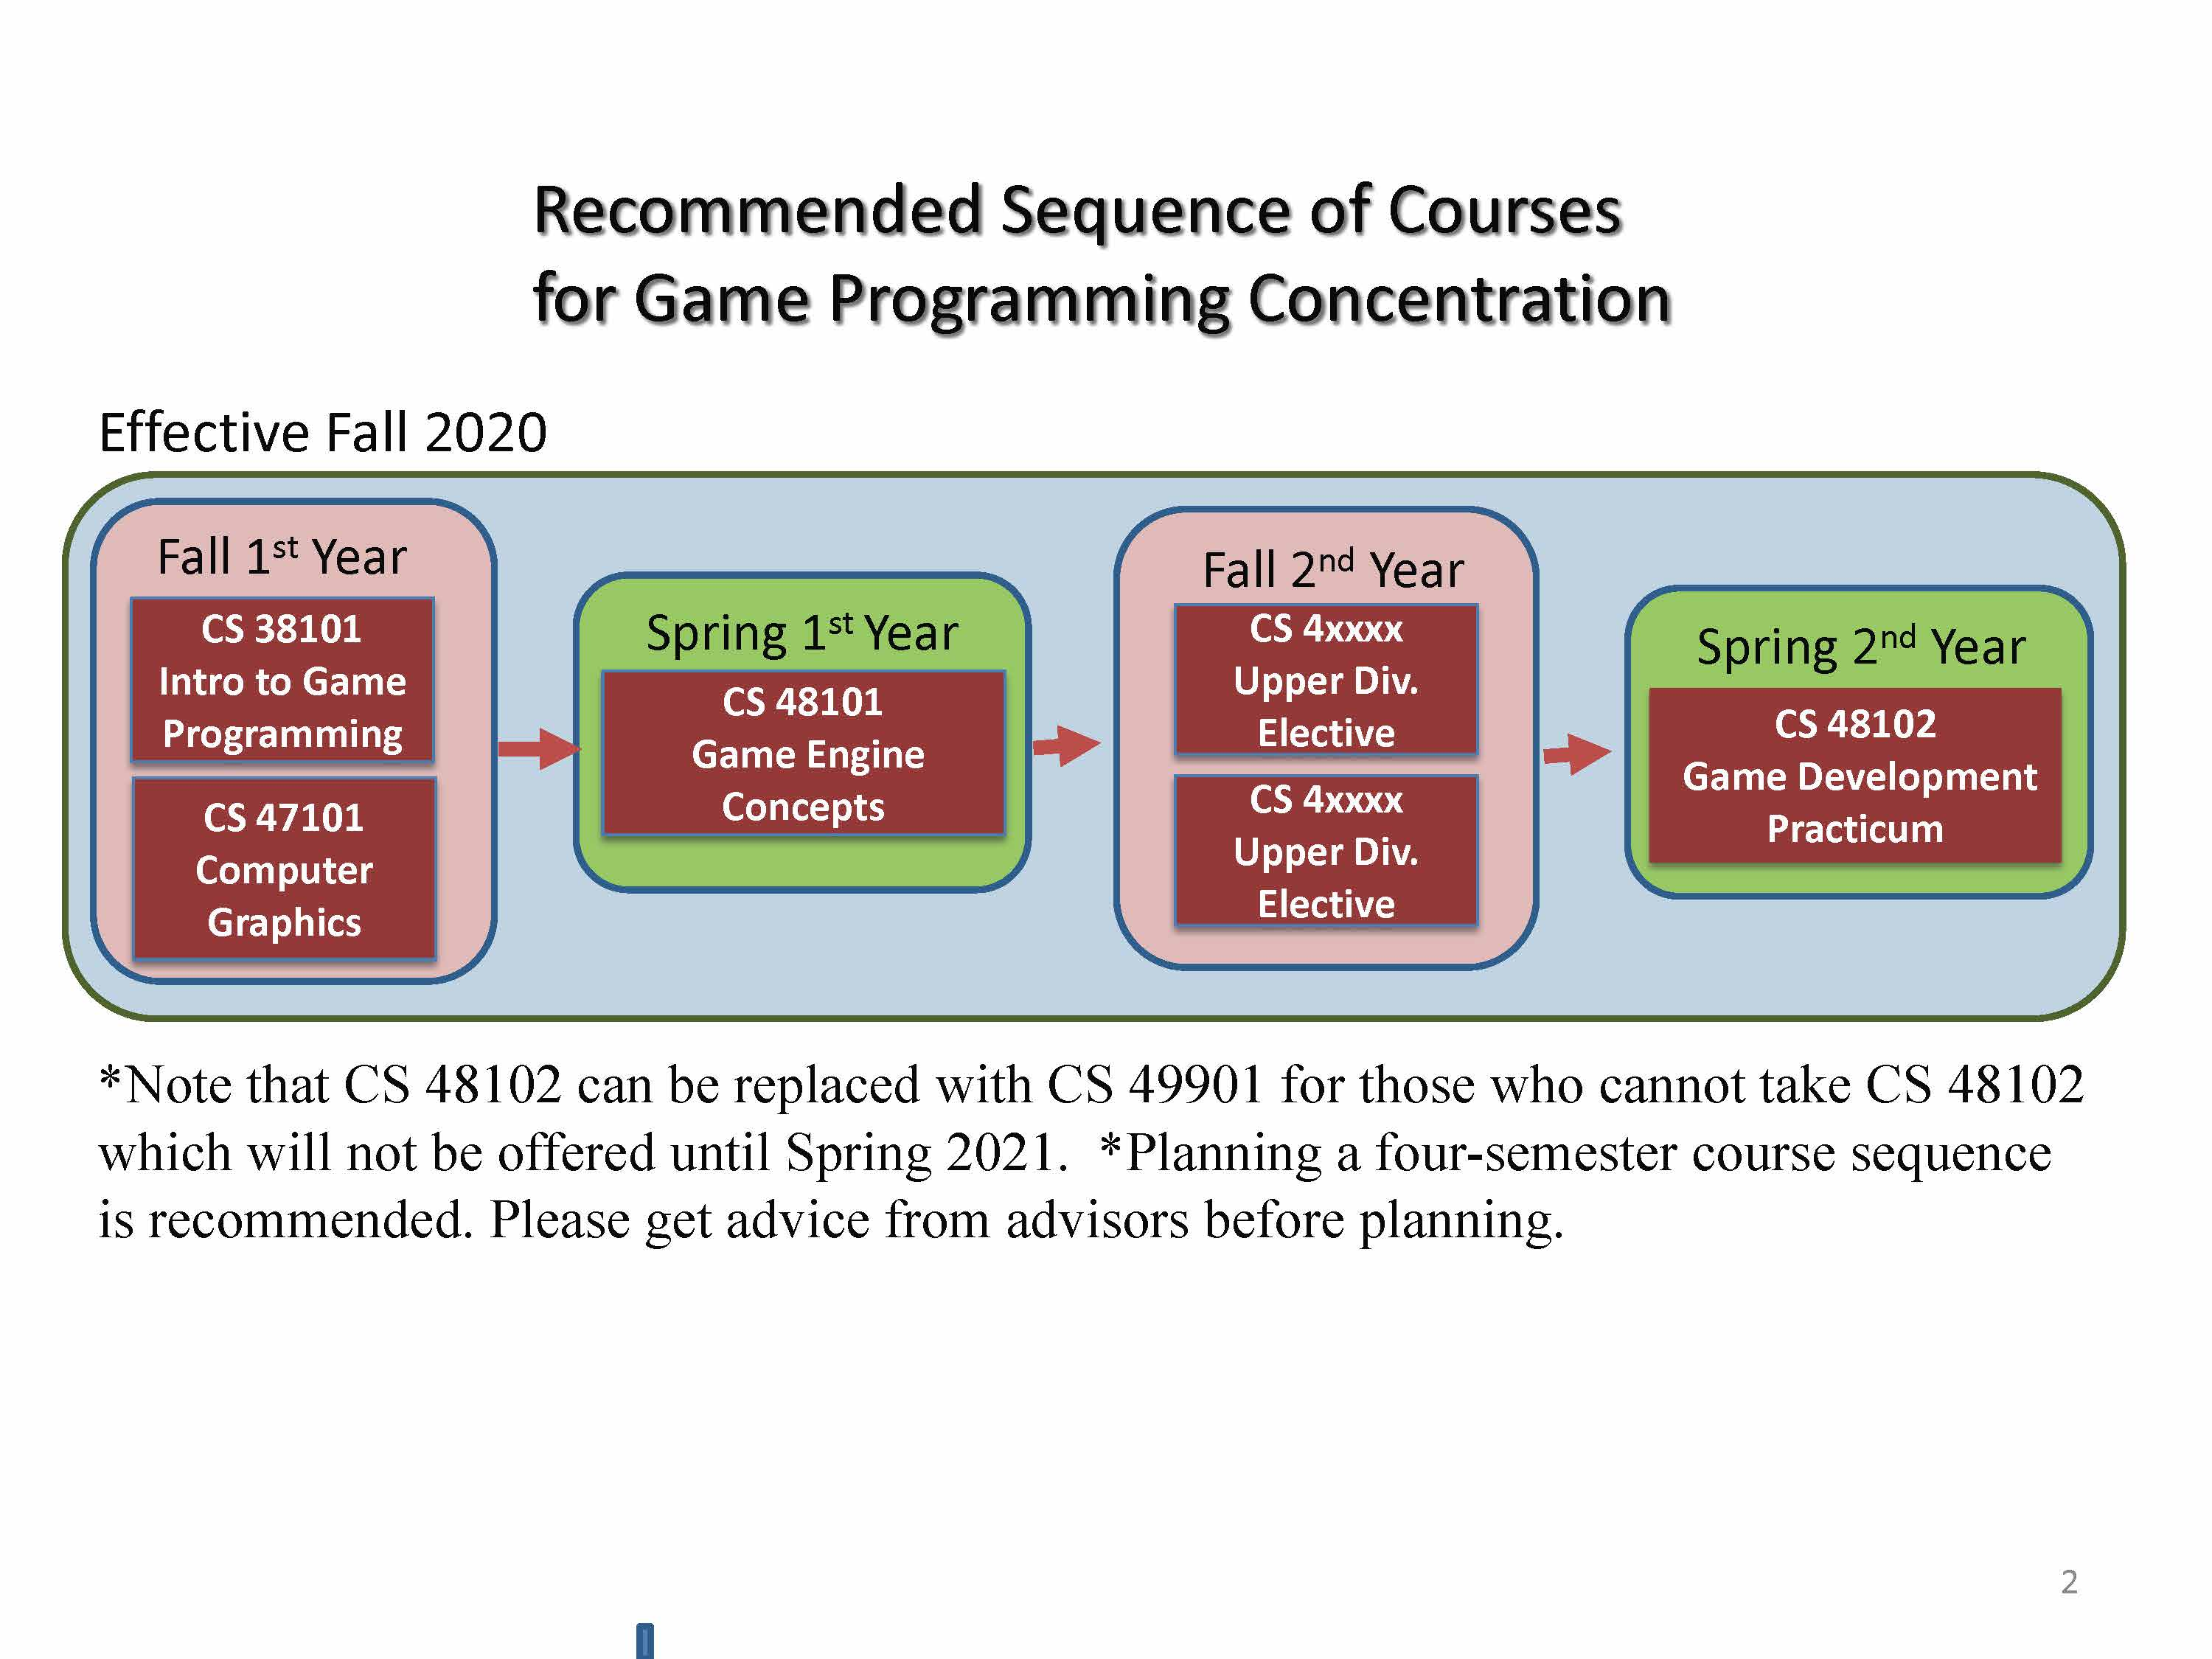 Game Programming  - Recommended Sequence of Courses